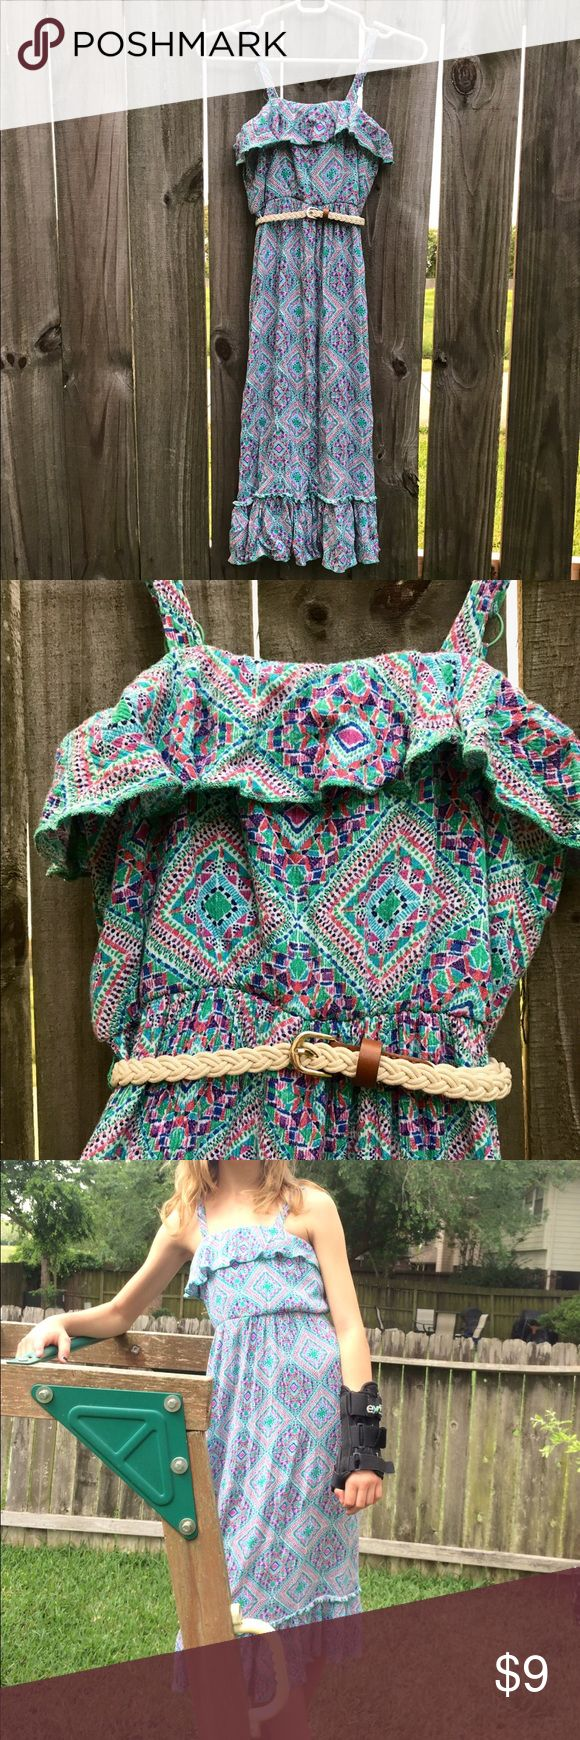 Girl's Blue Aztec Belted Maxi Dress Girl's blue and green Aztec print maxi dress with adjustable straps. Cinched elastic empir waist and braided belt. Cool for summertime! 🌸 Cute for a party or for church. Lily Rose Dresses Casual